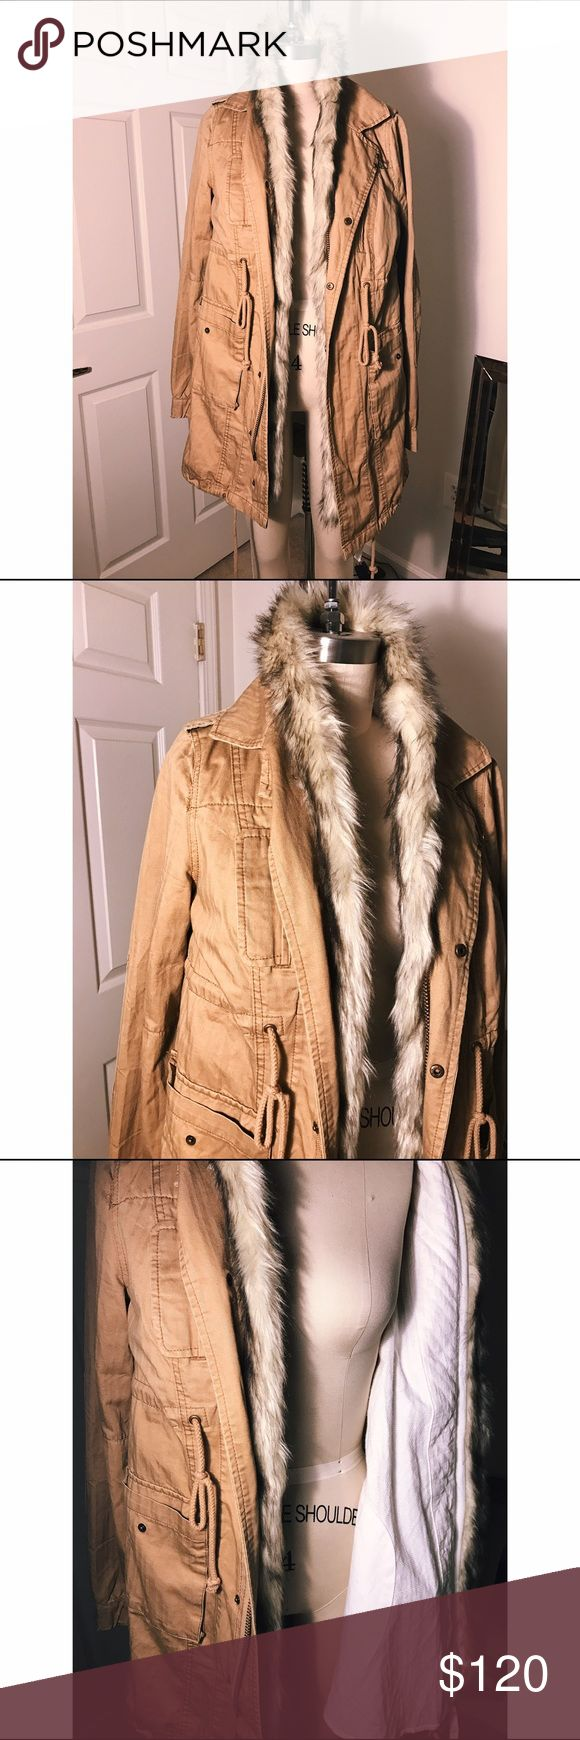 Free people khaki parka Free people khaki parka. Not completely lined with fur, only the neckline. Detachable fur collar. Good for winter to spring transition! Perfect condition. No signs of wear. Accepting offers, no trades. Free People Jackets & Coats